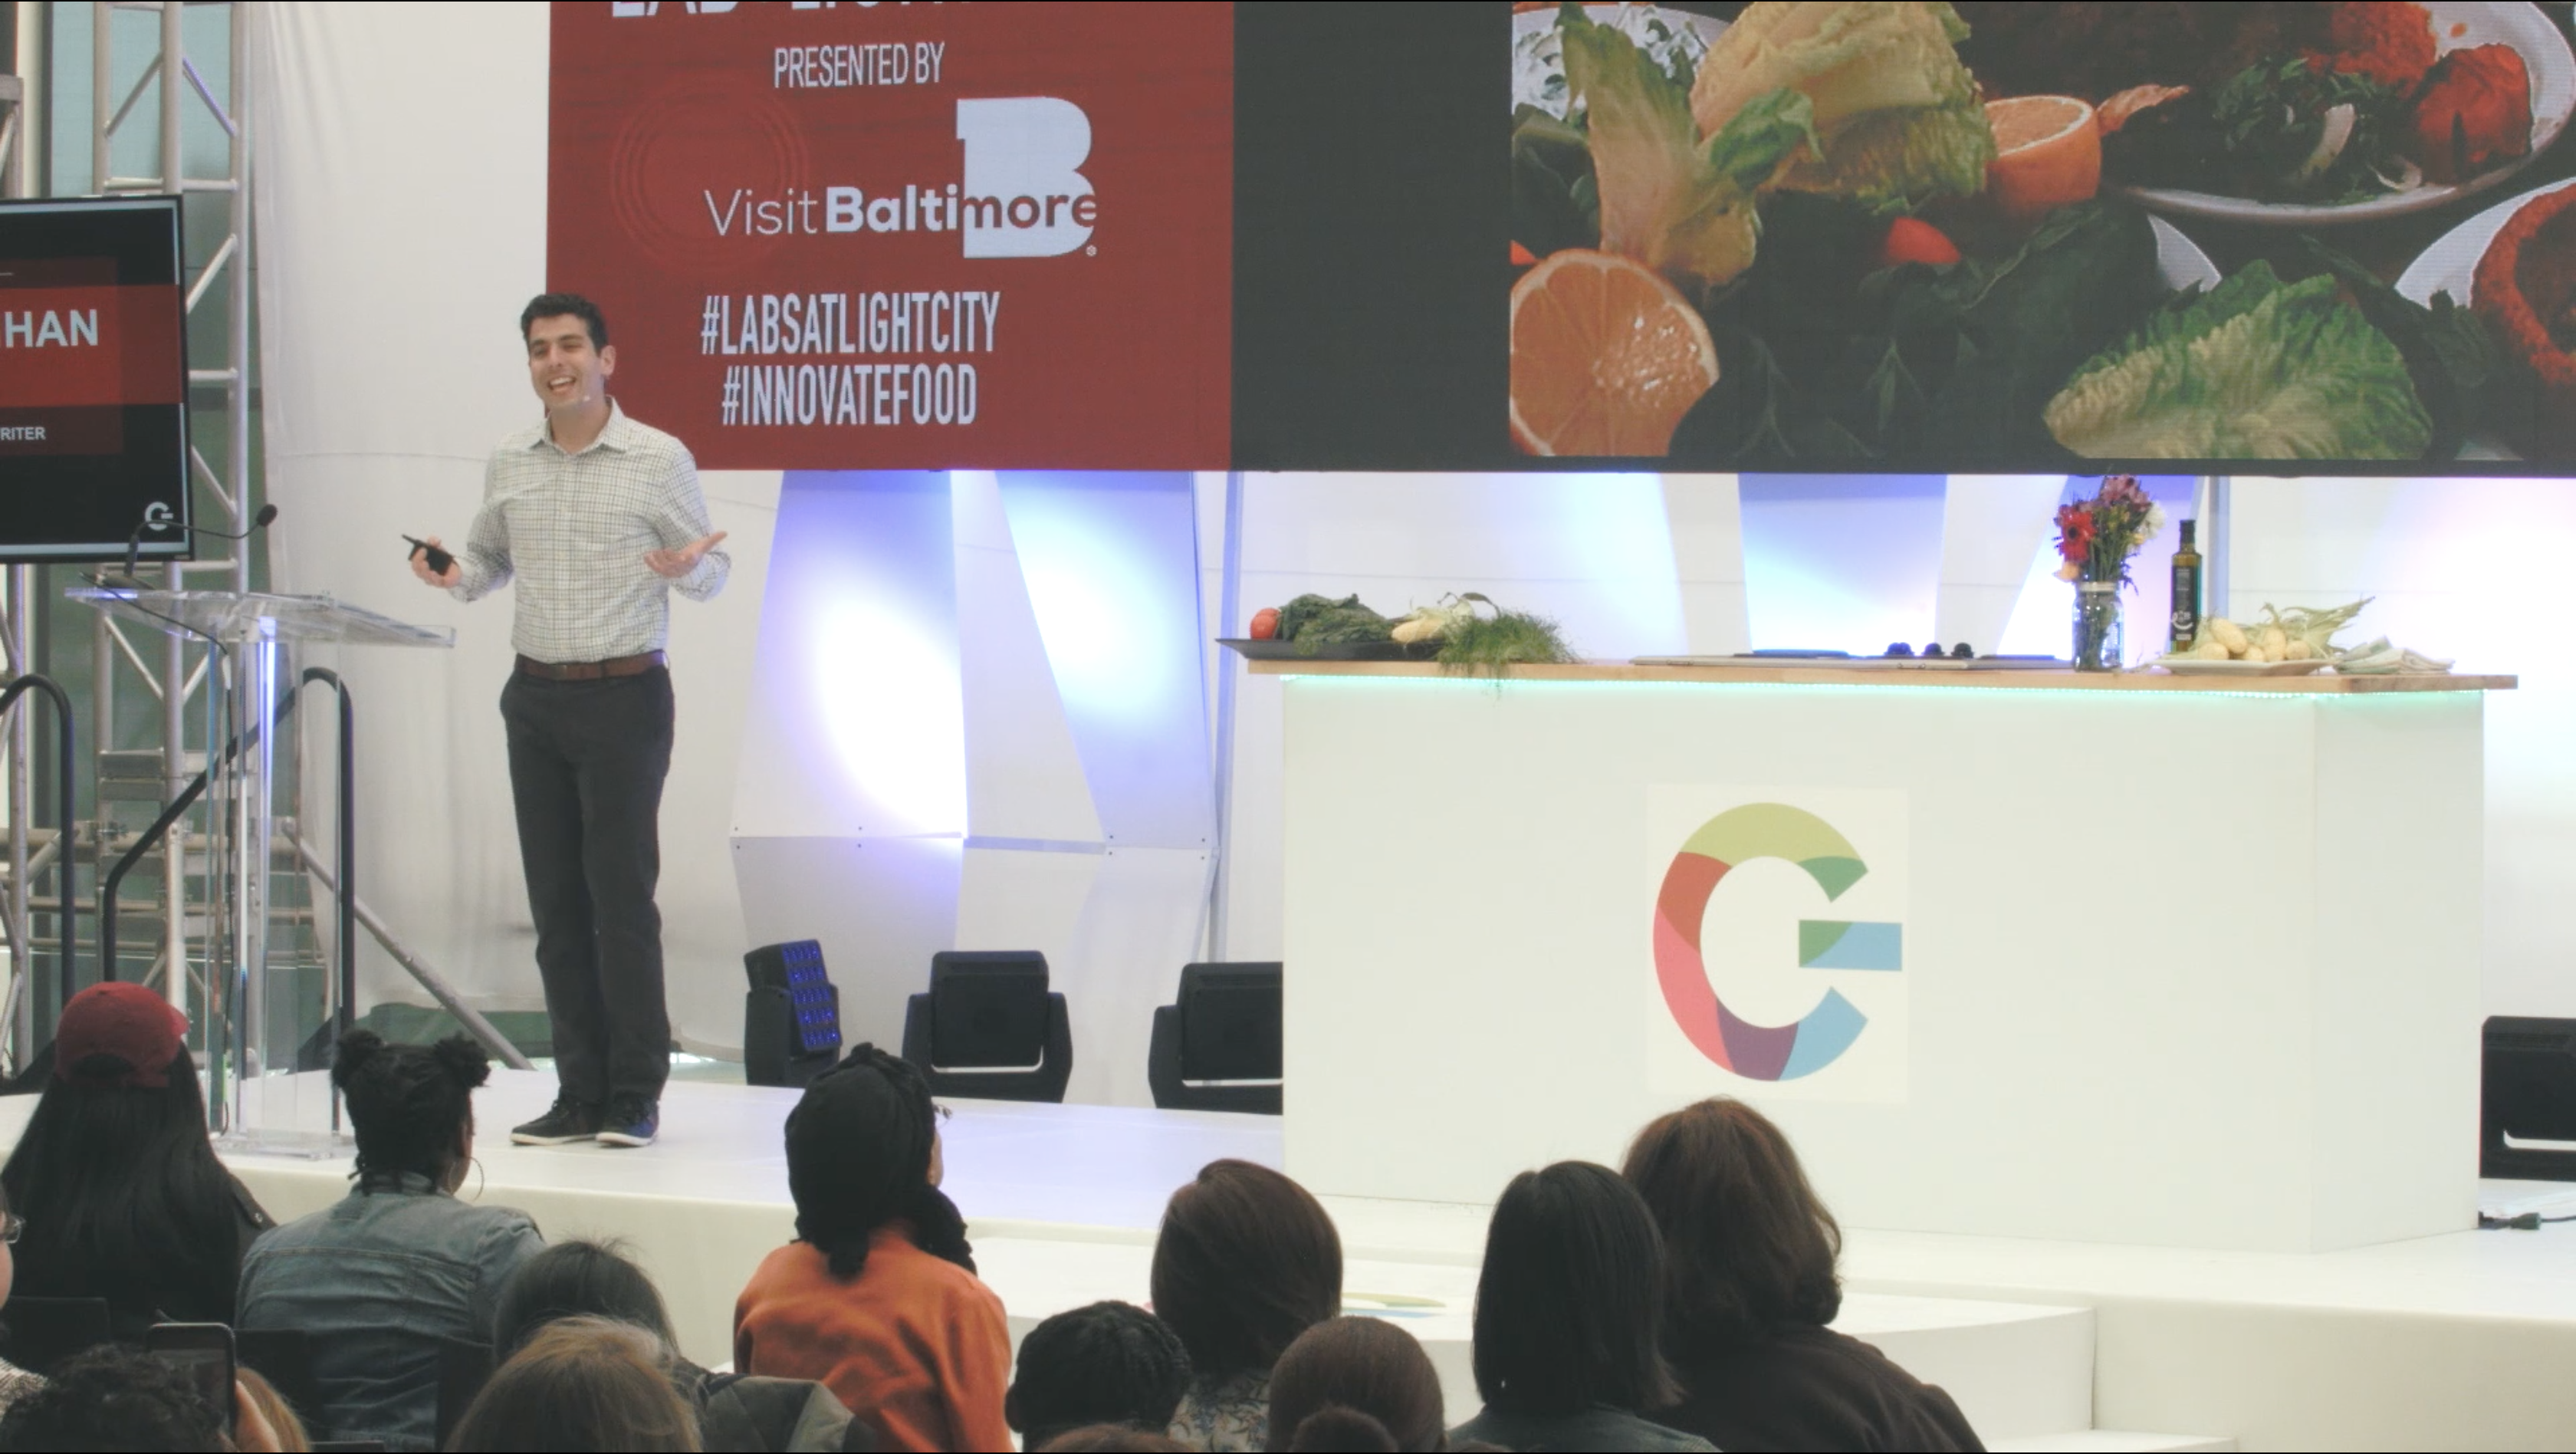 On stage at Light City: FoodLab